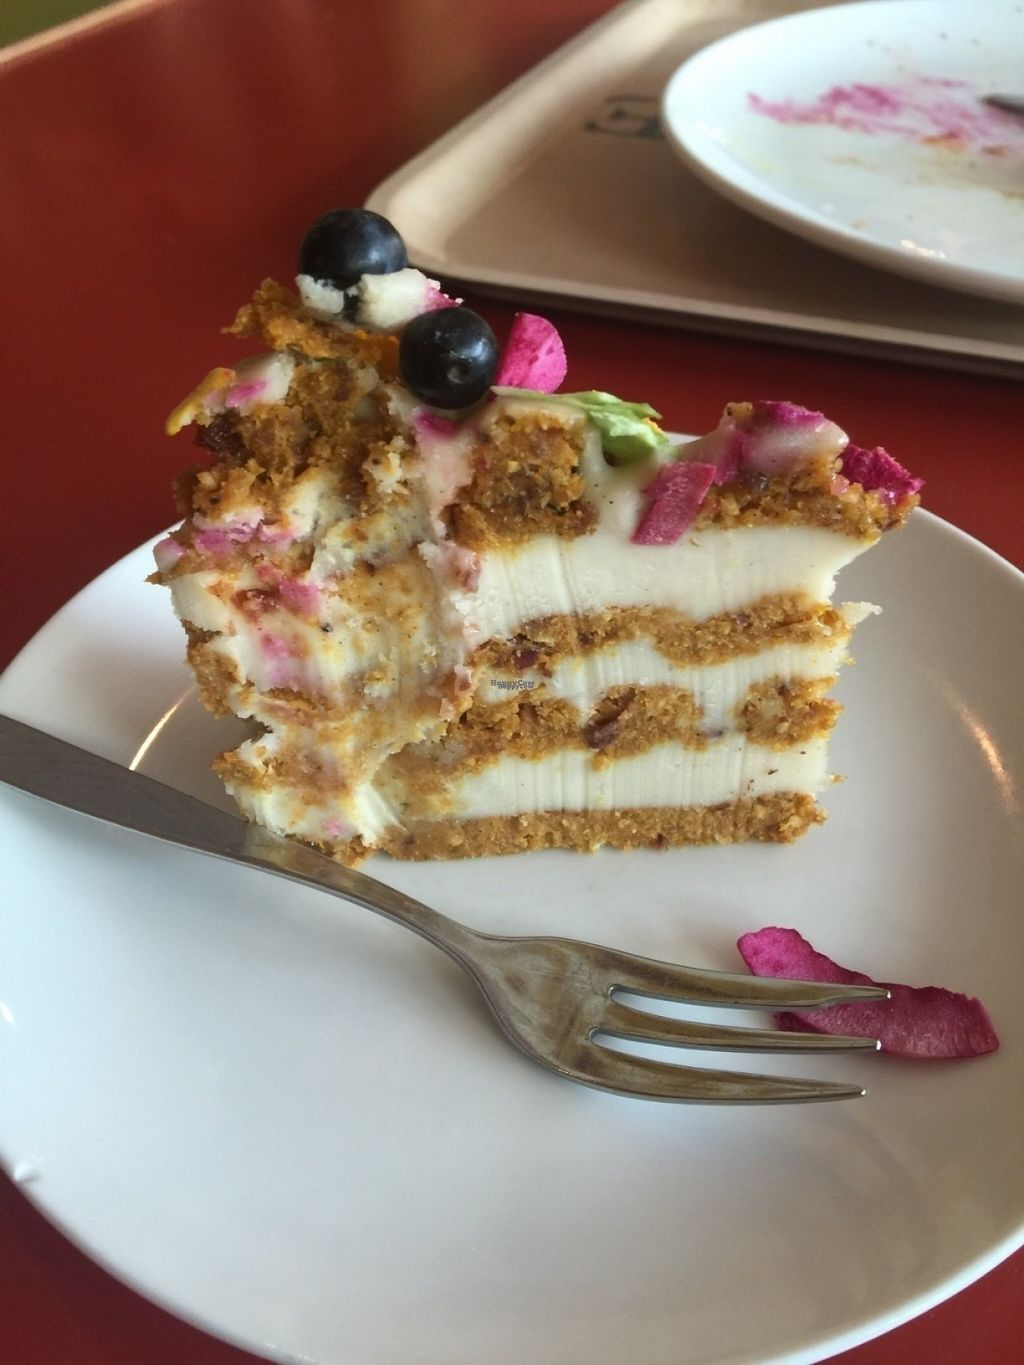 """Photo of Silvoplee  by <a href=""""/members/profile/FarleyD"""">FarleyD</a> <br/>Raw carrot cake <br/> August 19, 2016  - <a href='/contact/abuse/image/844/170144'>Report</a>"""